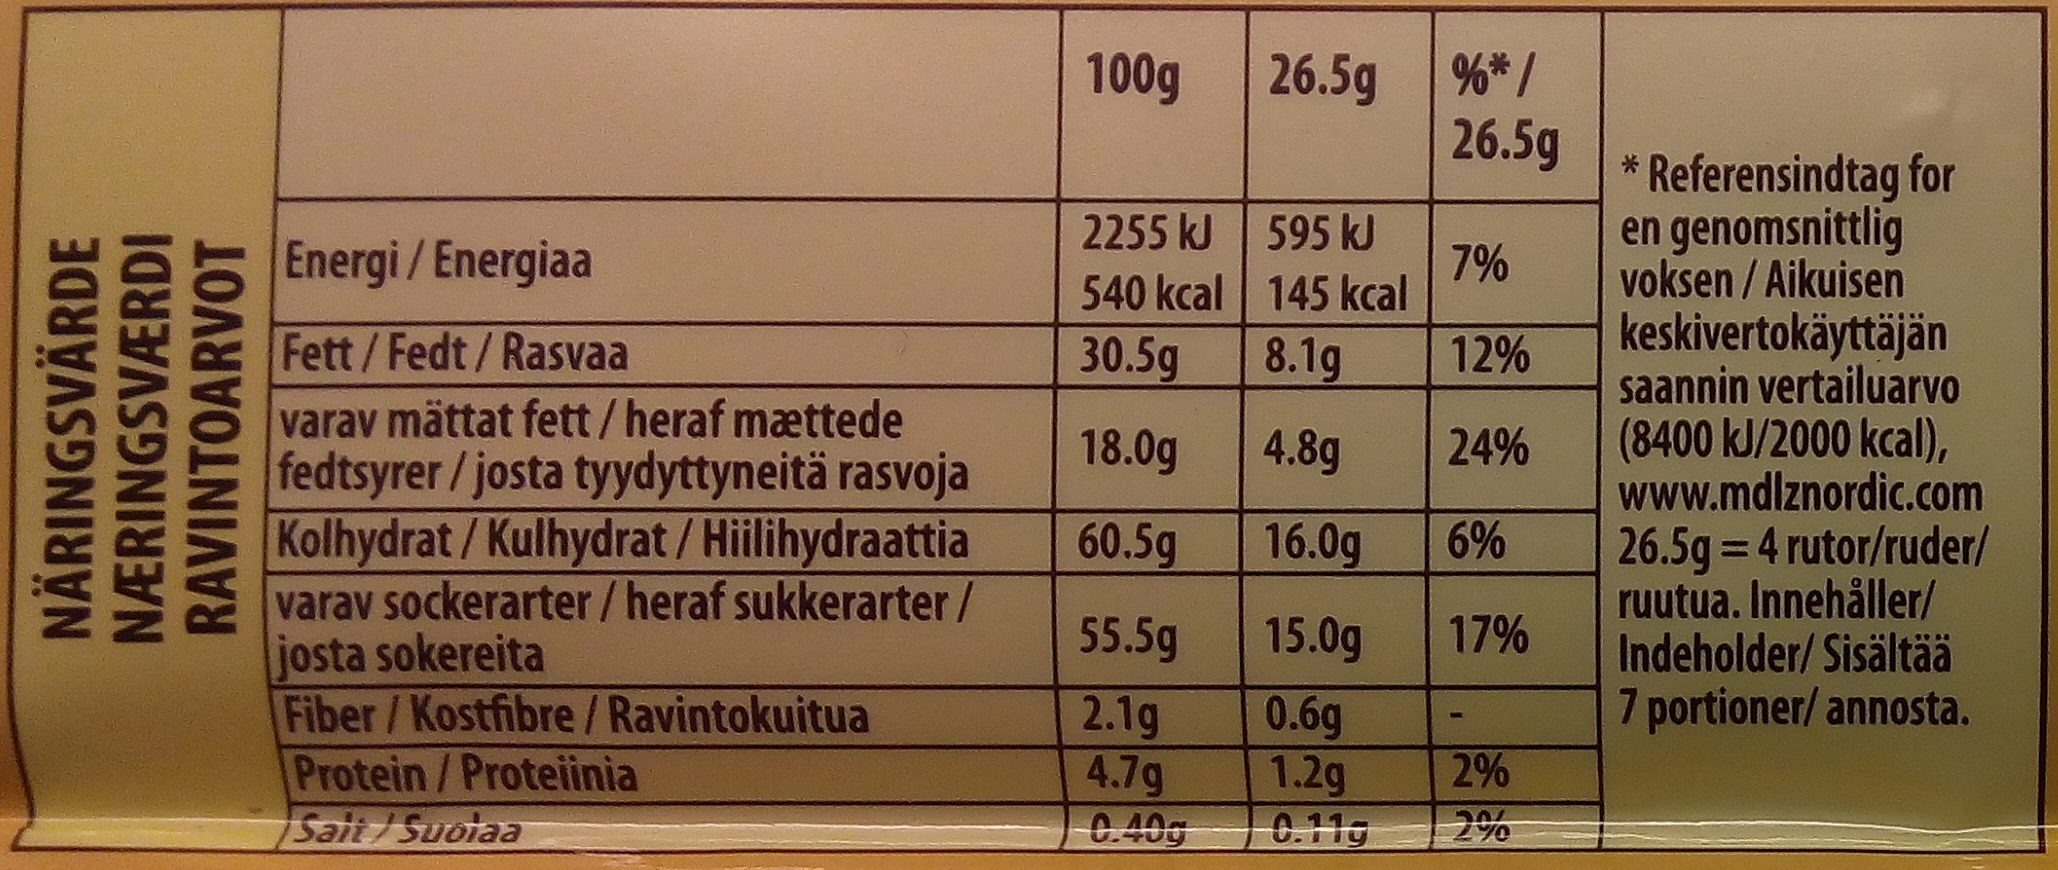 Mjölkchoklad Oreo Marabou - Nutrition facts